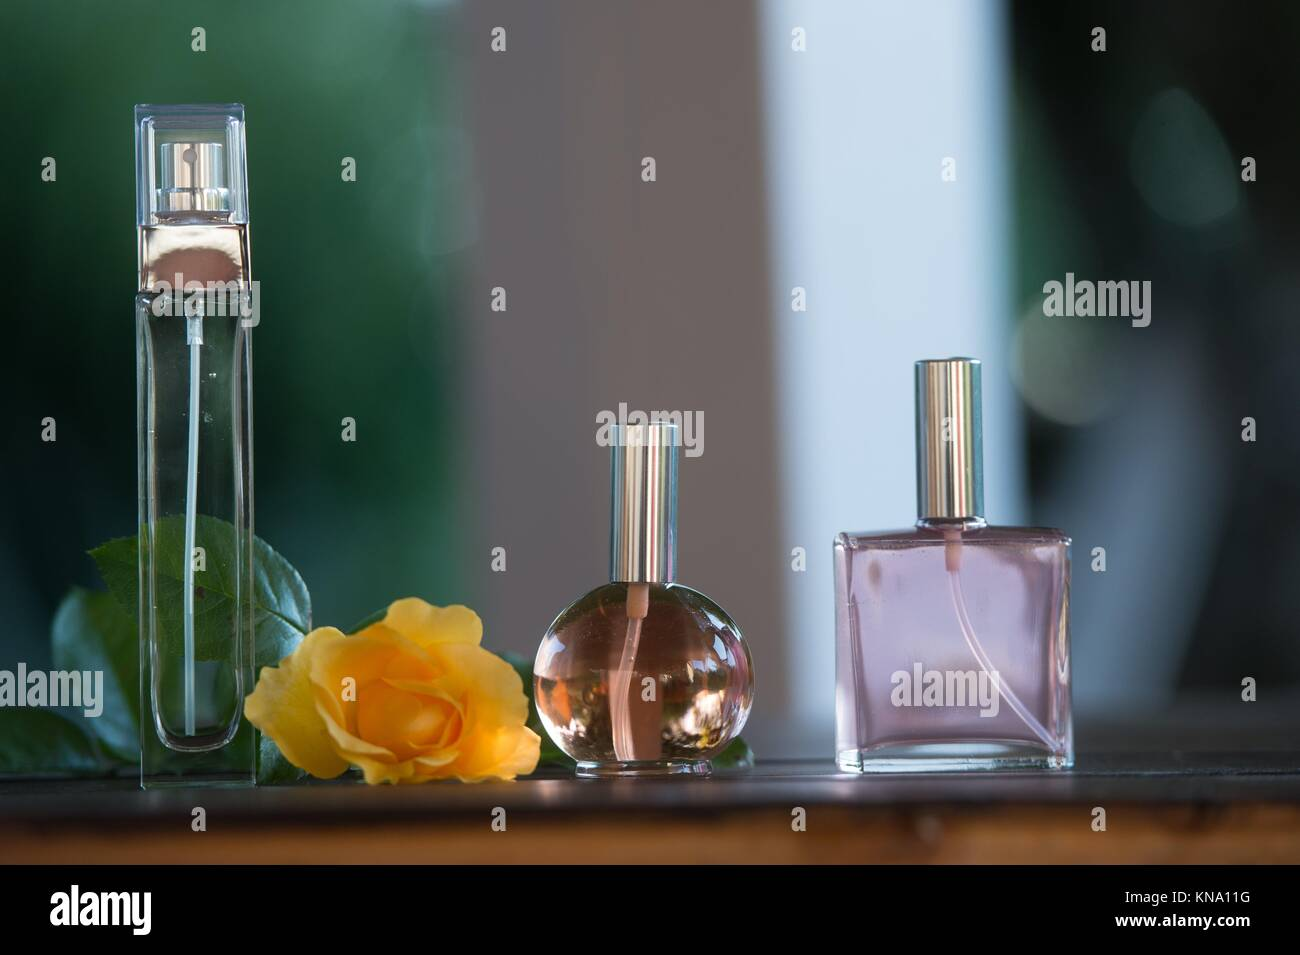 Luxurious Perfume bottles on table outdoor, France. - Stock Image